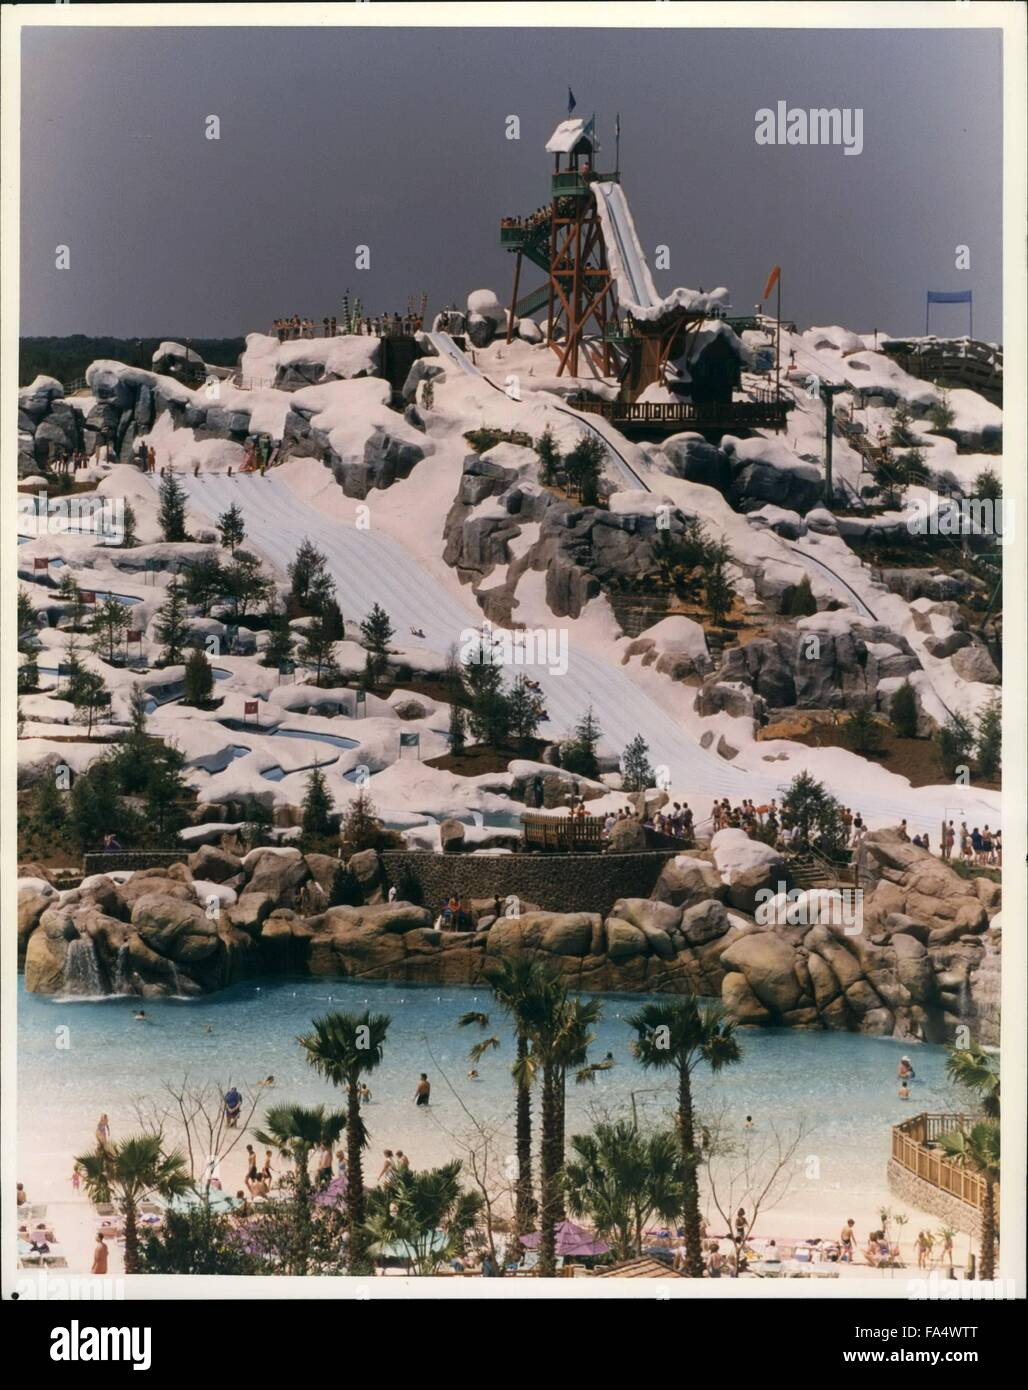 1993 - Fast Flume with snow Slope Theme: In Florida Plunging straight down the side of Mt. Gushmore at Blizzard - Stock Image